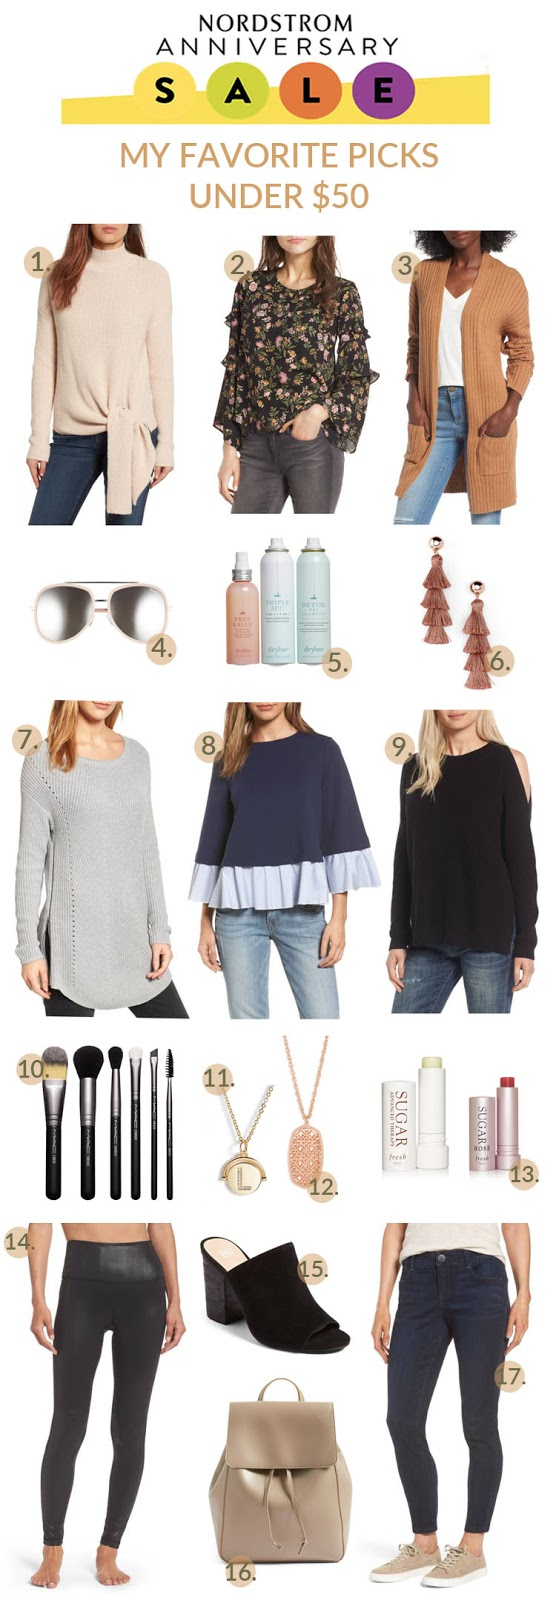 $50 & Under Nordstrom Anniversary Sale Picks by fashion blogger Laura of Walking in Memphis in High Heels